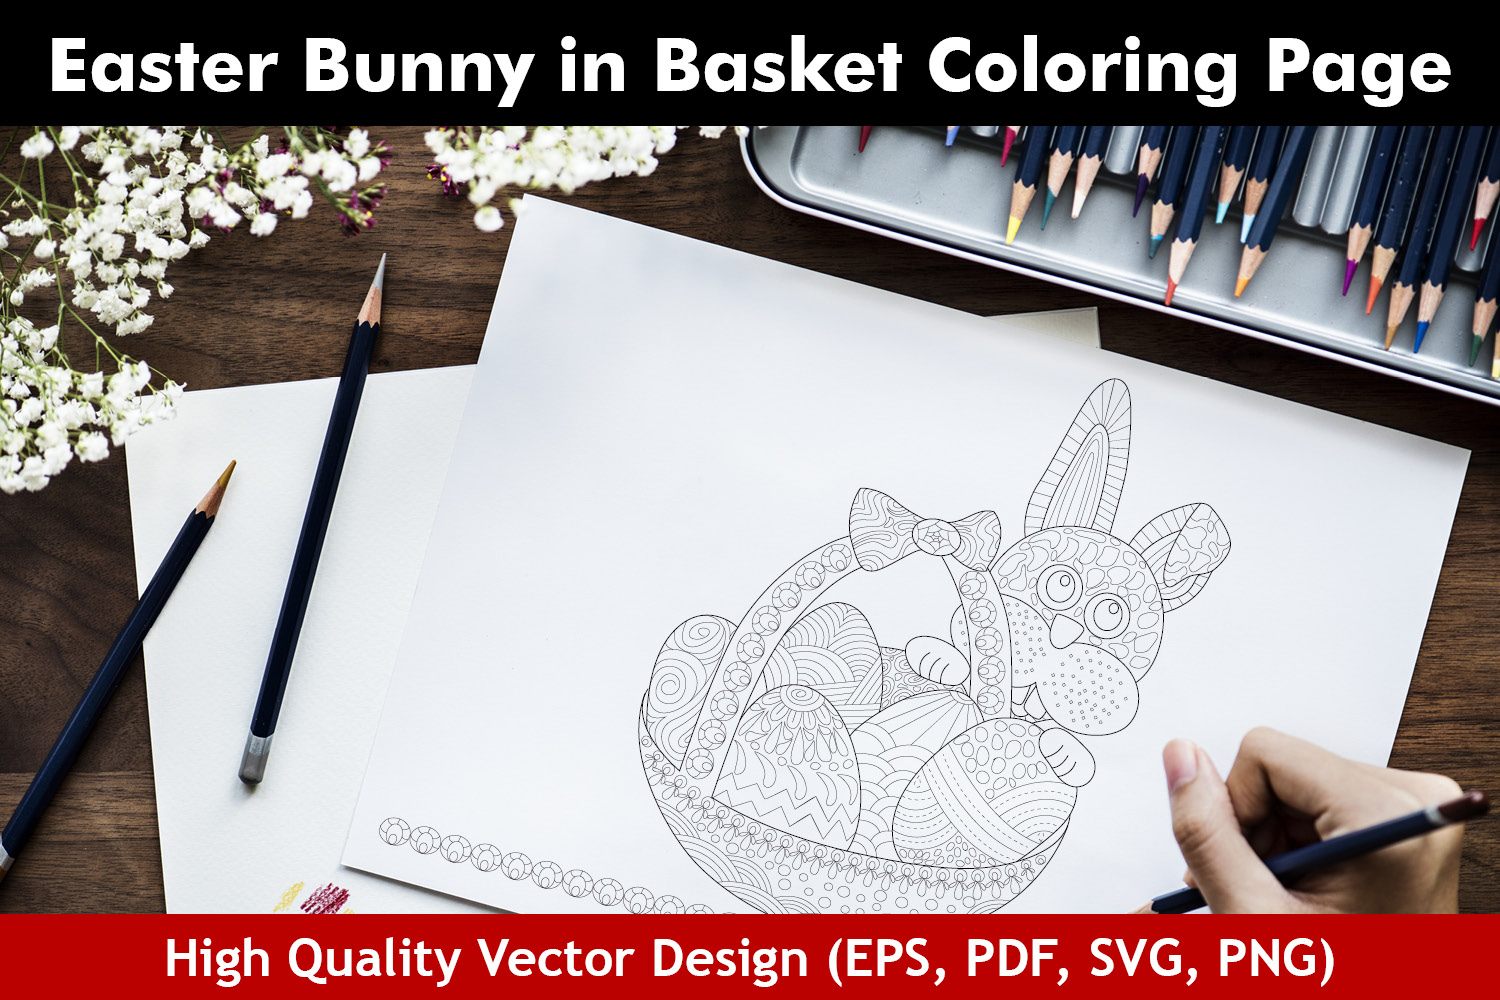 Easter Bunny in Basket Coloring Page example image 1